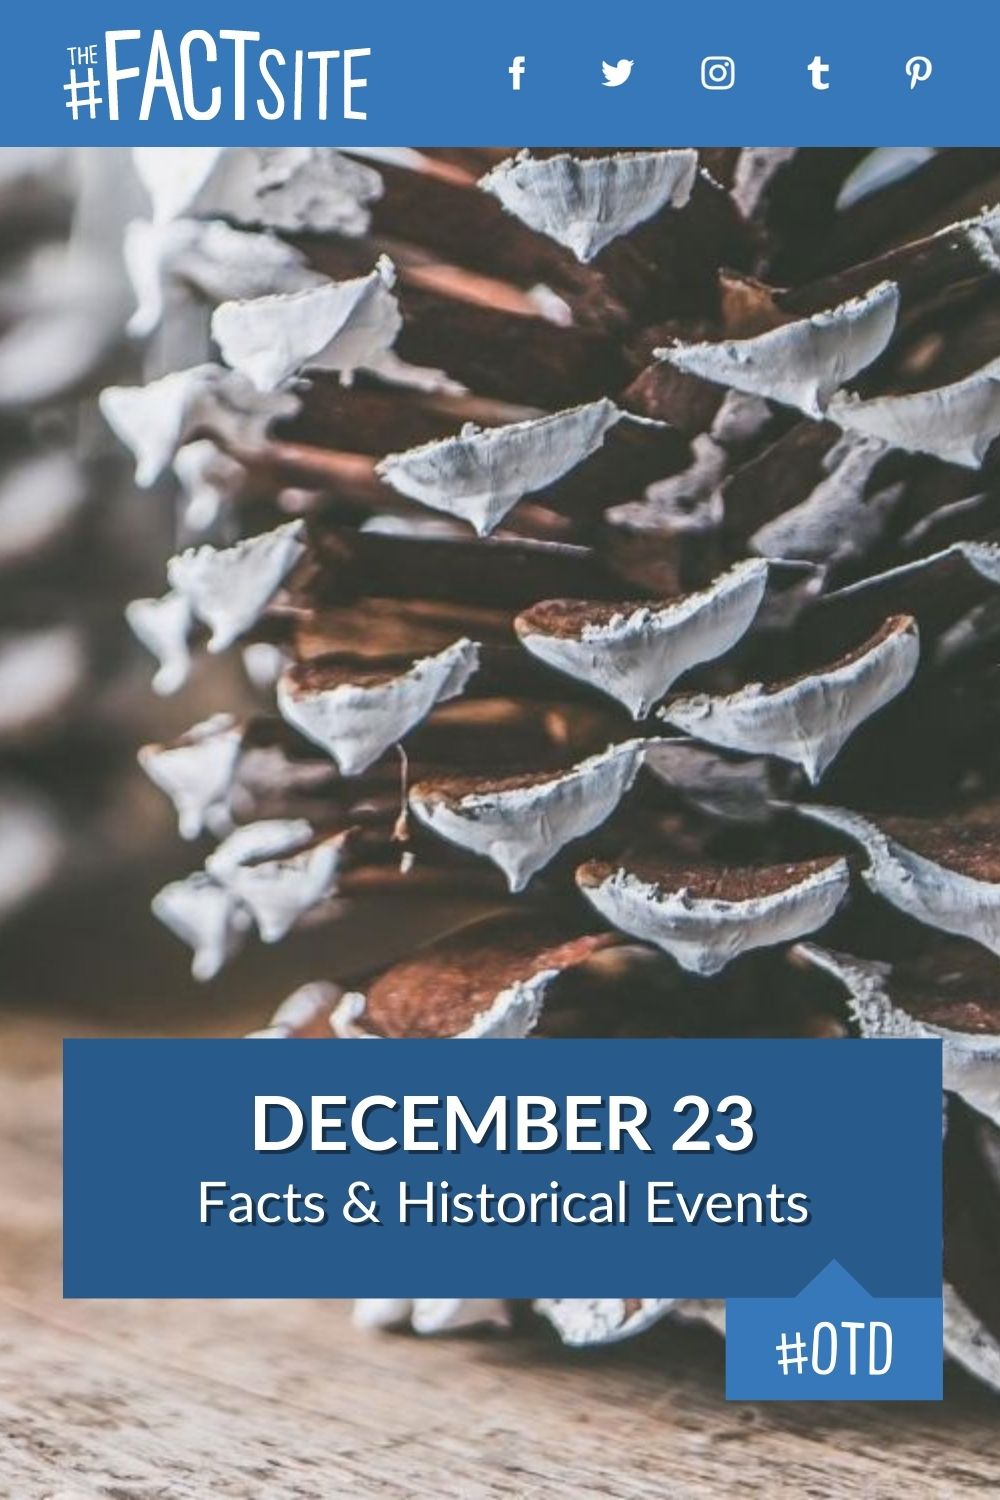 Facts & Historic Events That Happened on December 23